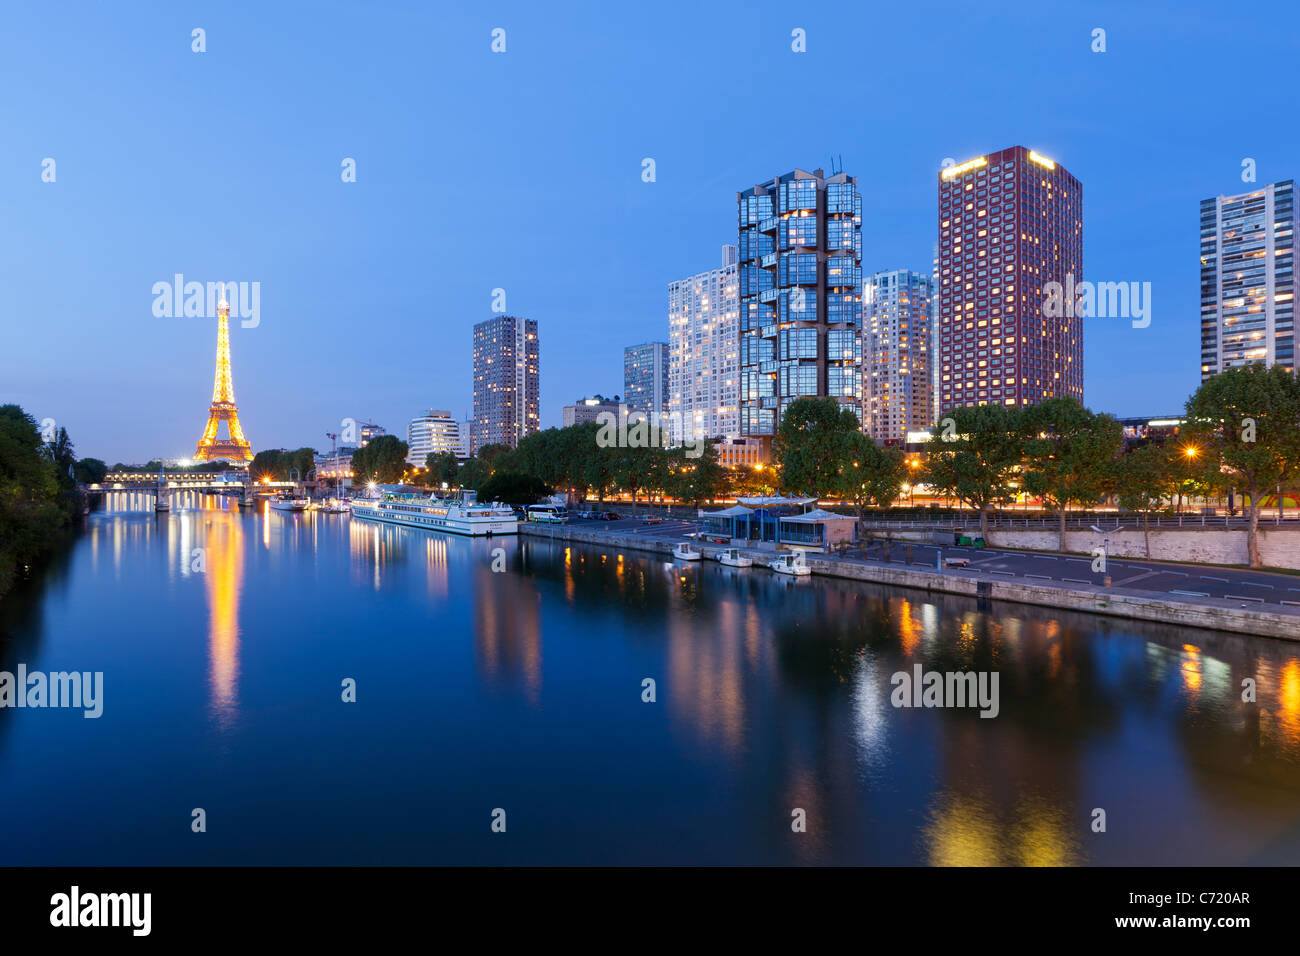 France, Paris, Night View Of River Seine With High-rise Buildings On The Left Bank And Eiffel Tower - Stock Image